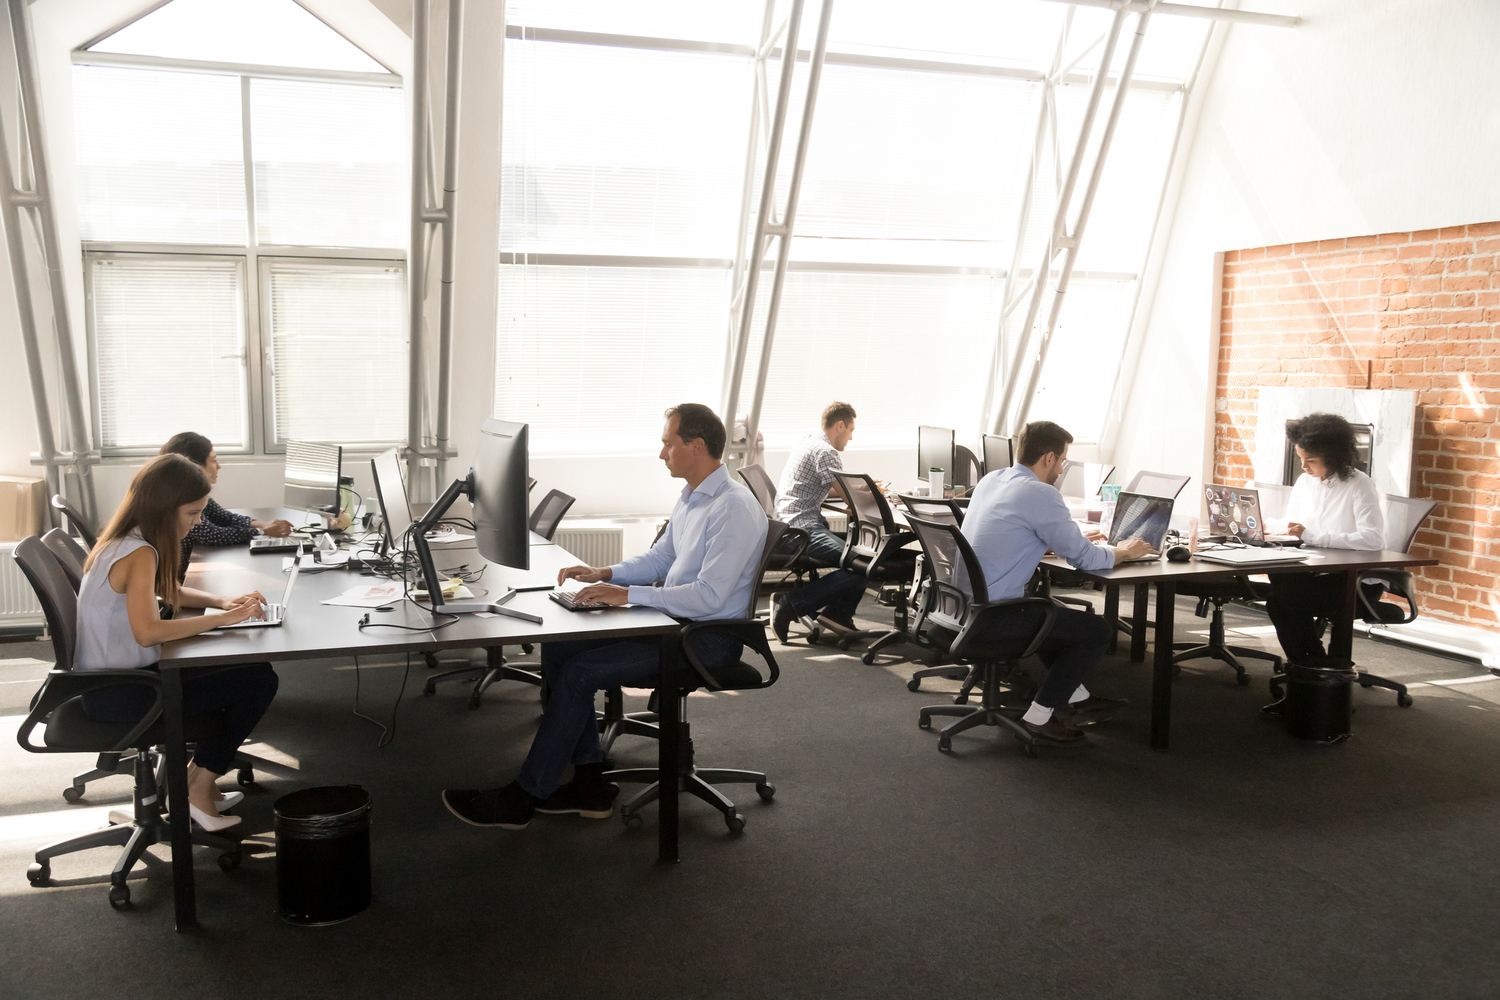 What Are The Benefits Of Shared Office Space Over Normal Rented Space?